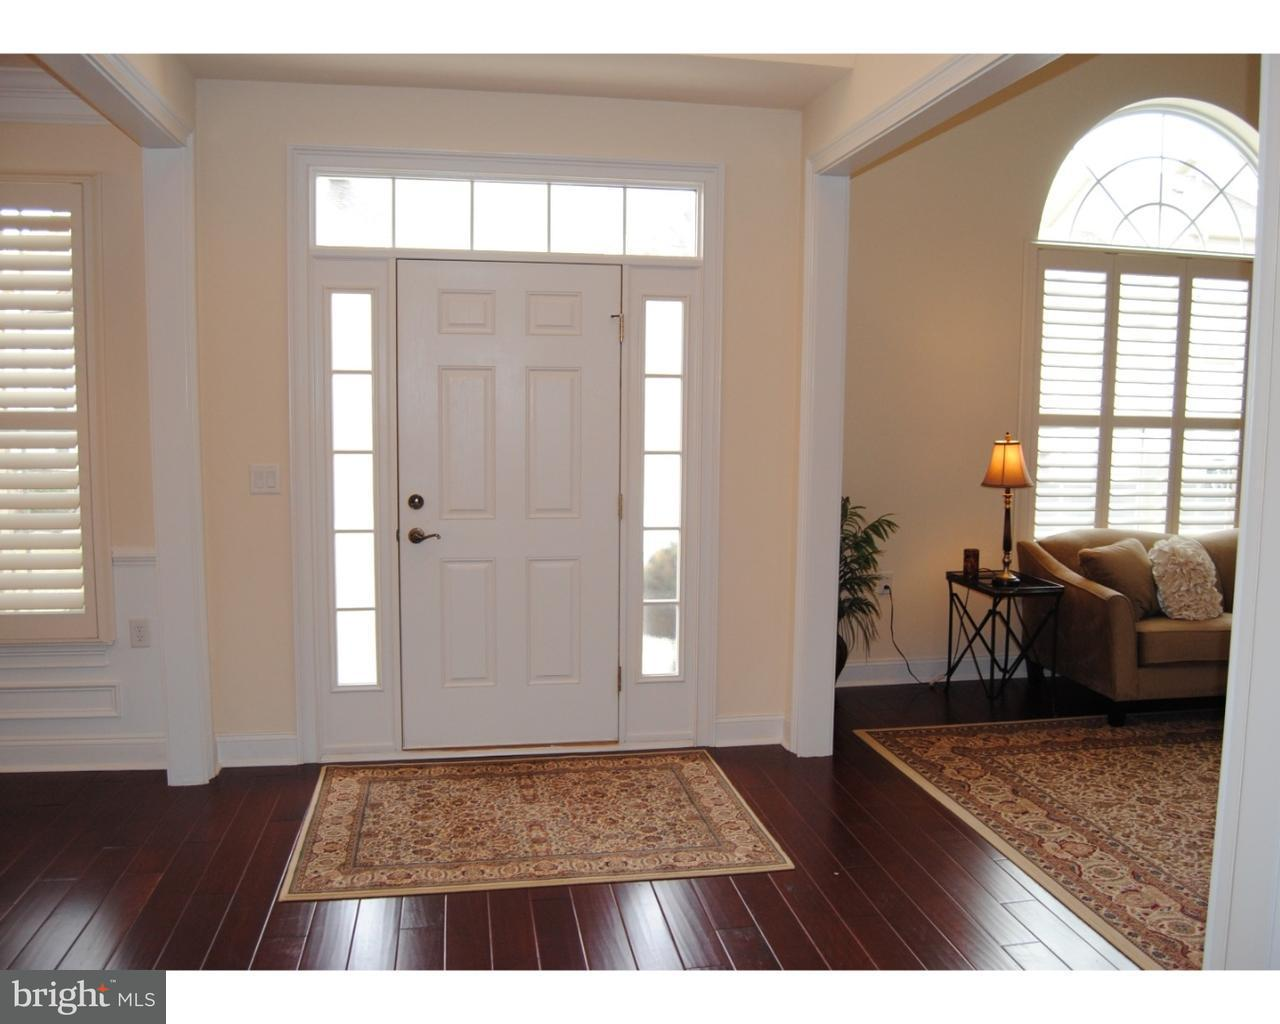 124 THORNHILL LN, NEWTOWN - Listed at $684,900, NEWTOWN, BUCKS County